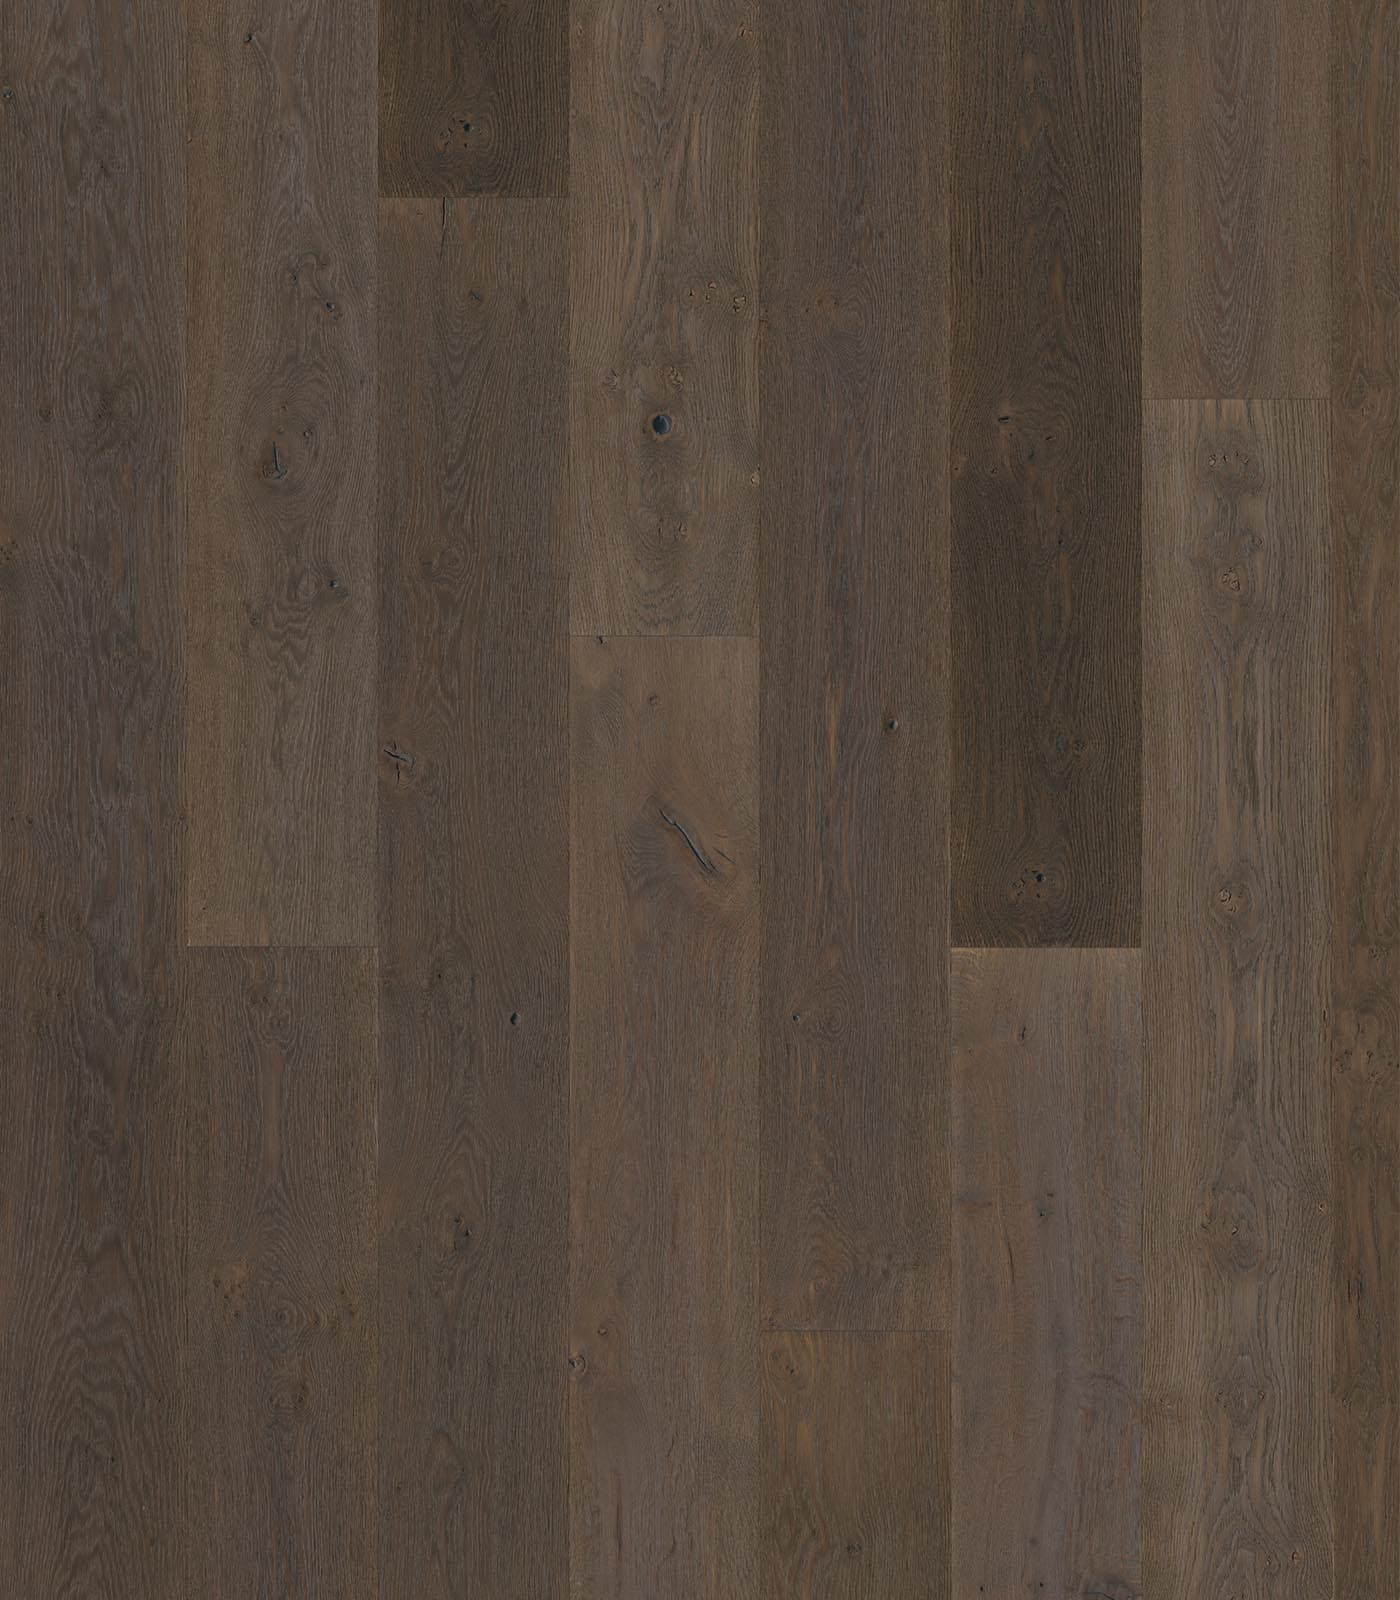 Bern-European Oak Floors-Heritage Collection-flat